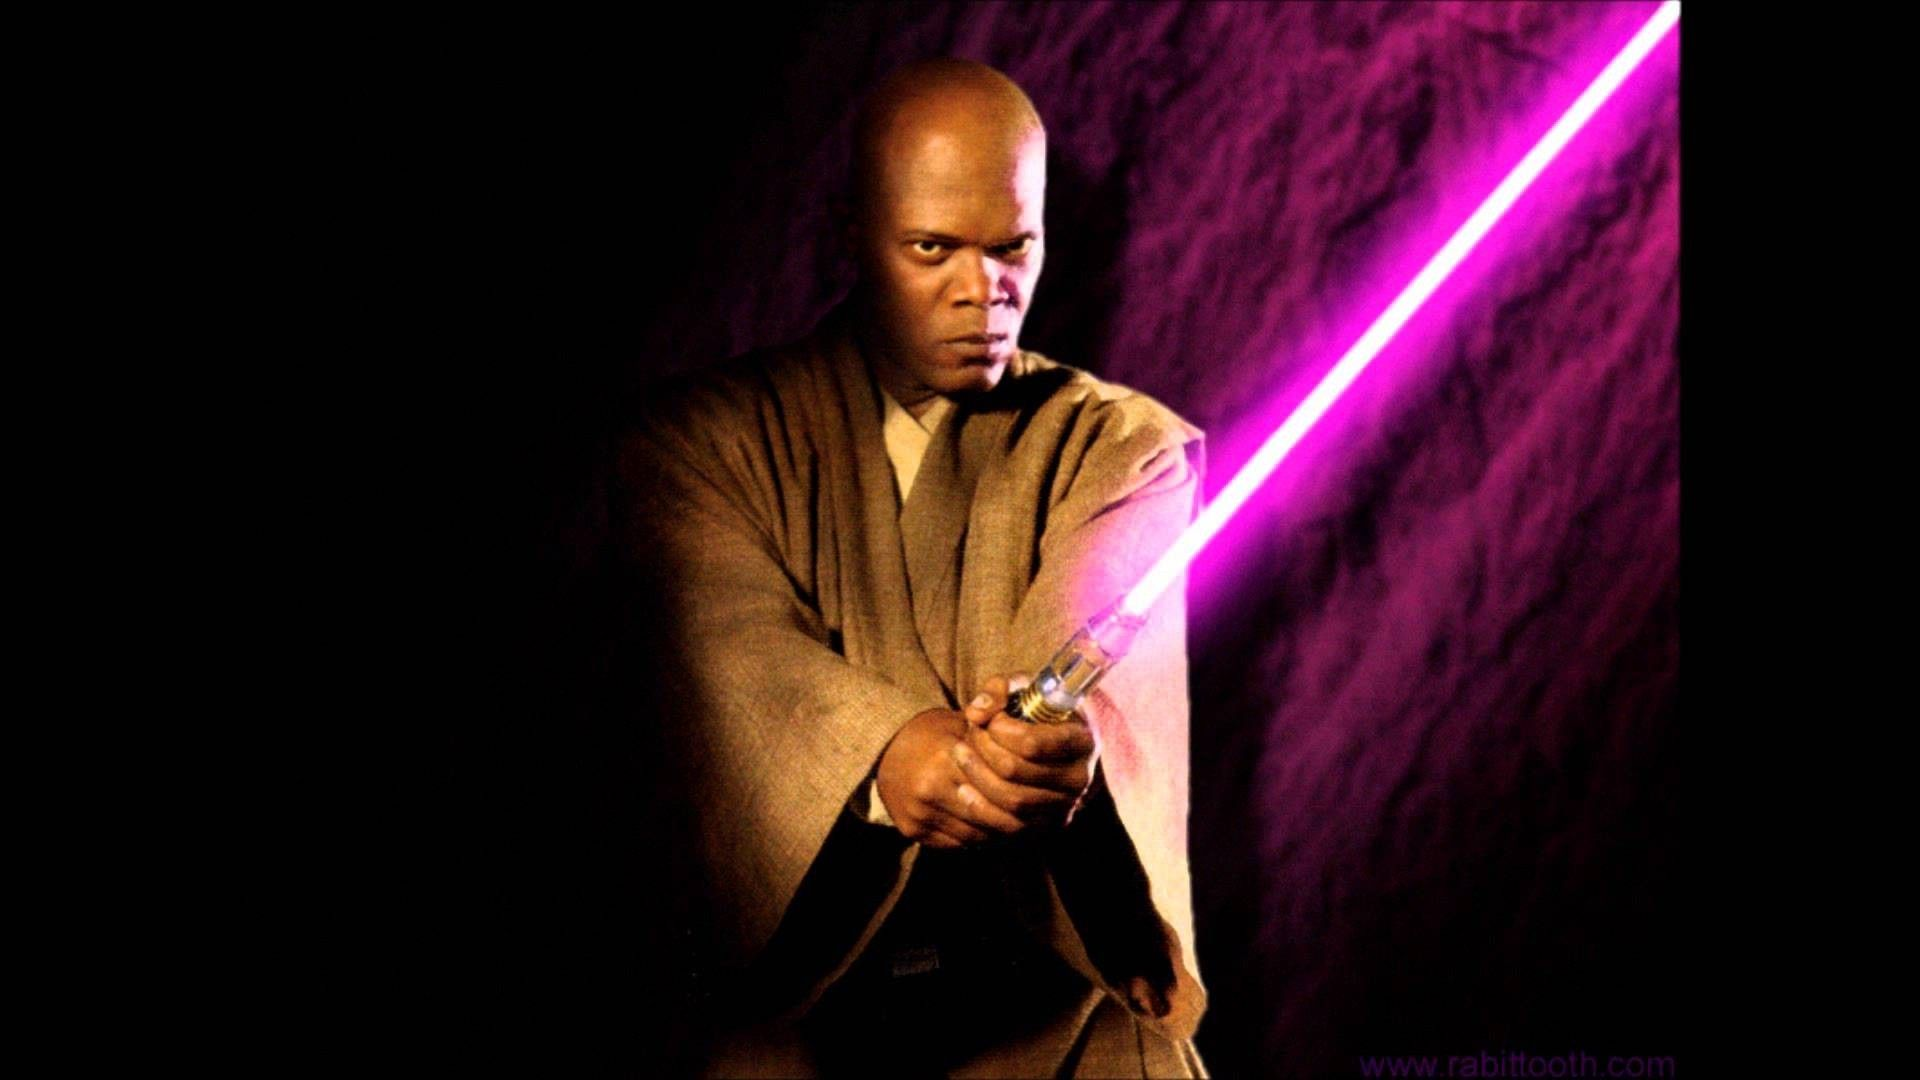 Mace Windu wallpaper mace Mace windu Star wars vii Purple 1920x1080